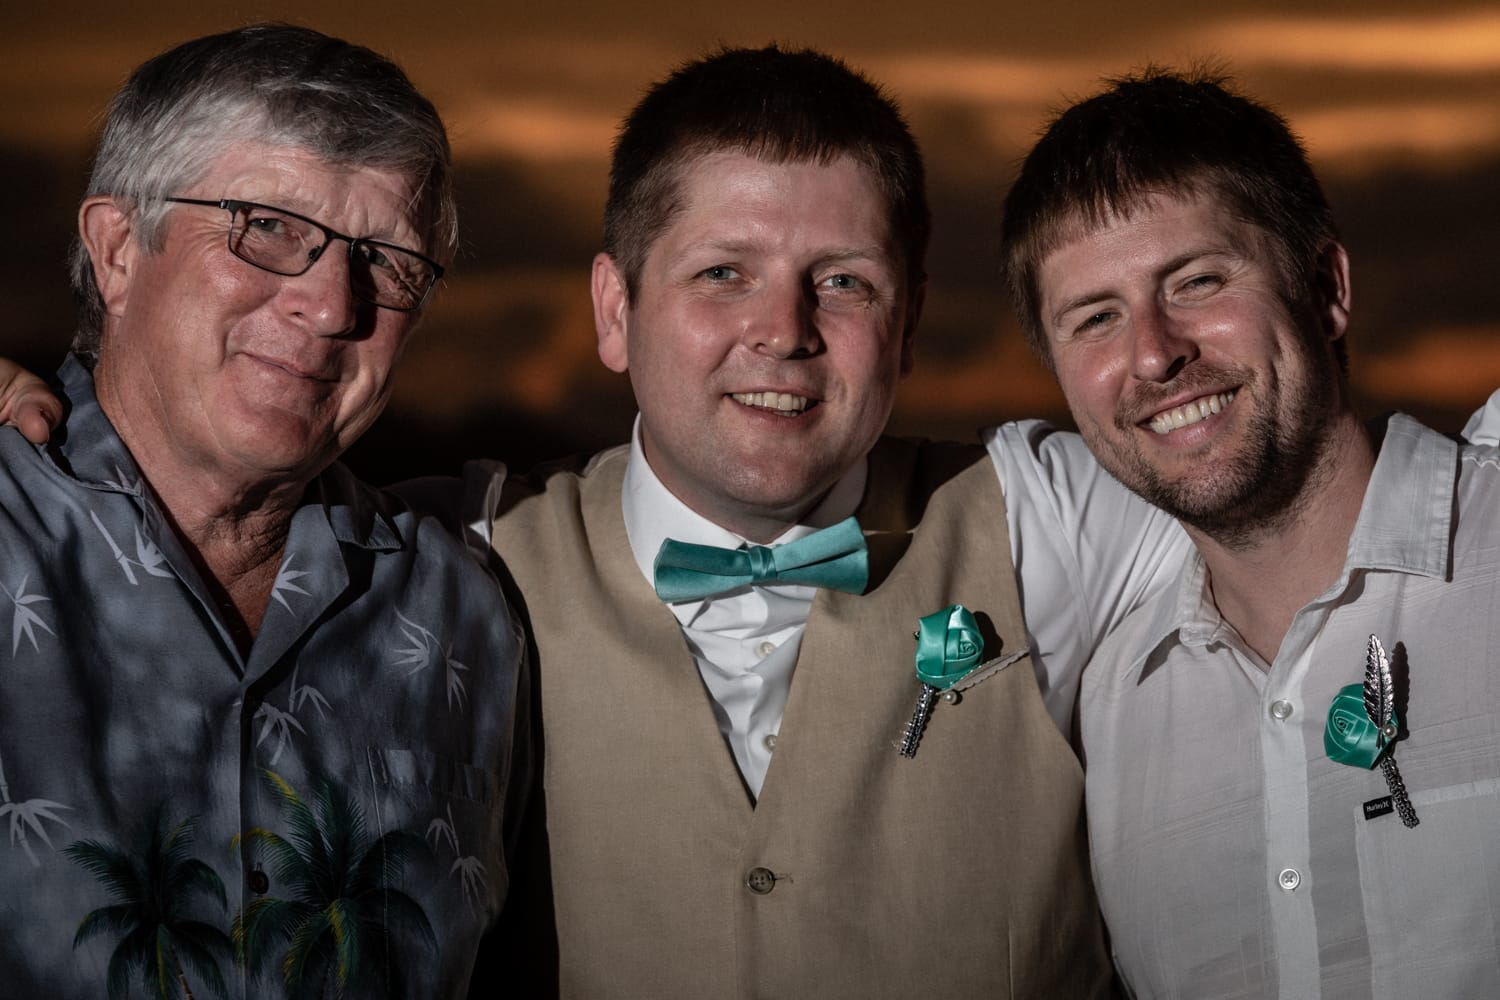 Wedding portrait of groom and best man with father.